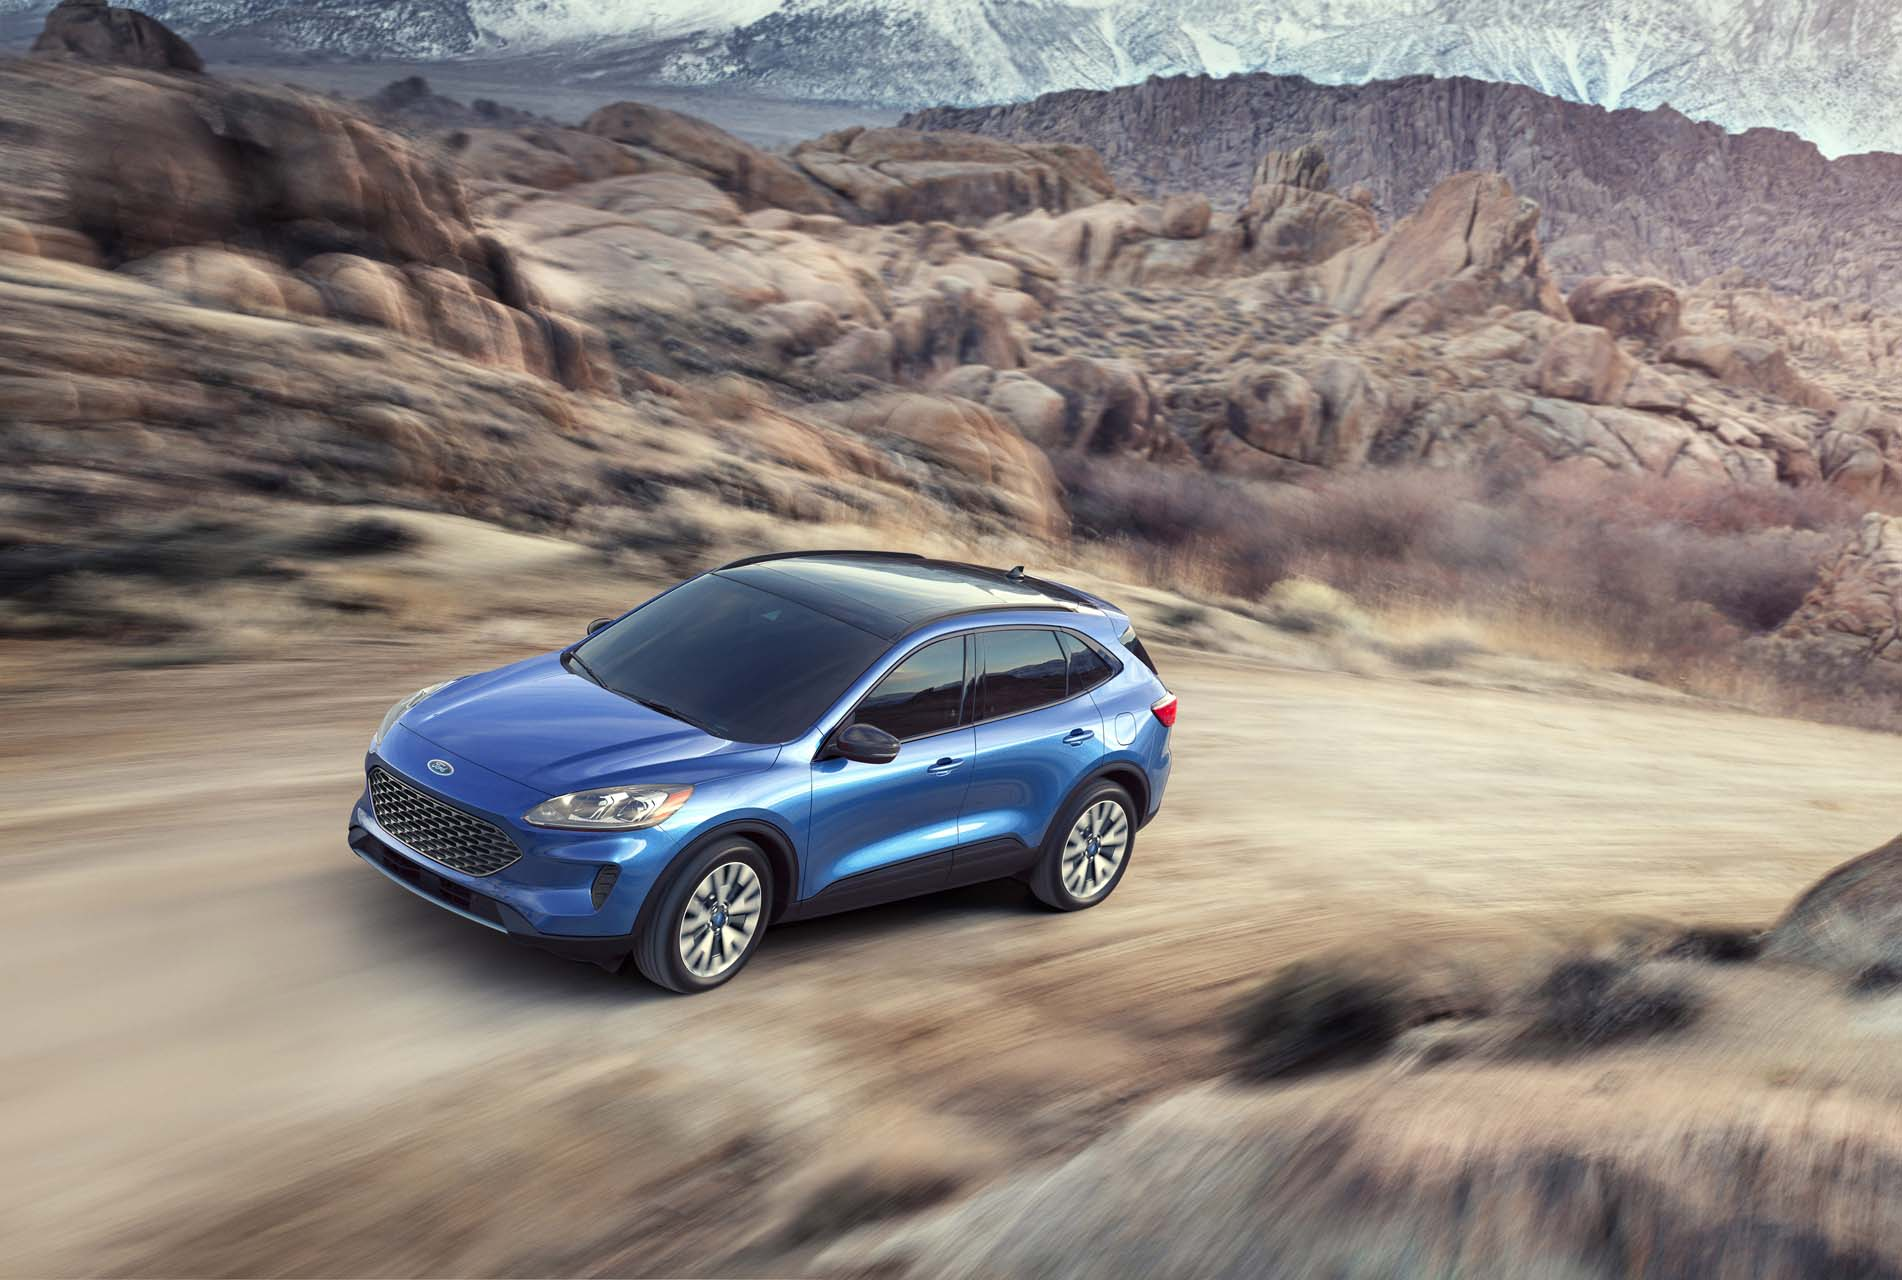 2020 Ford Escape preview